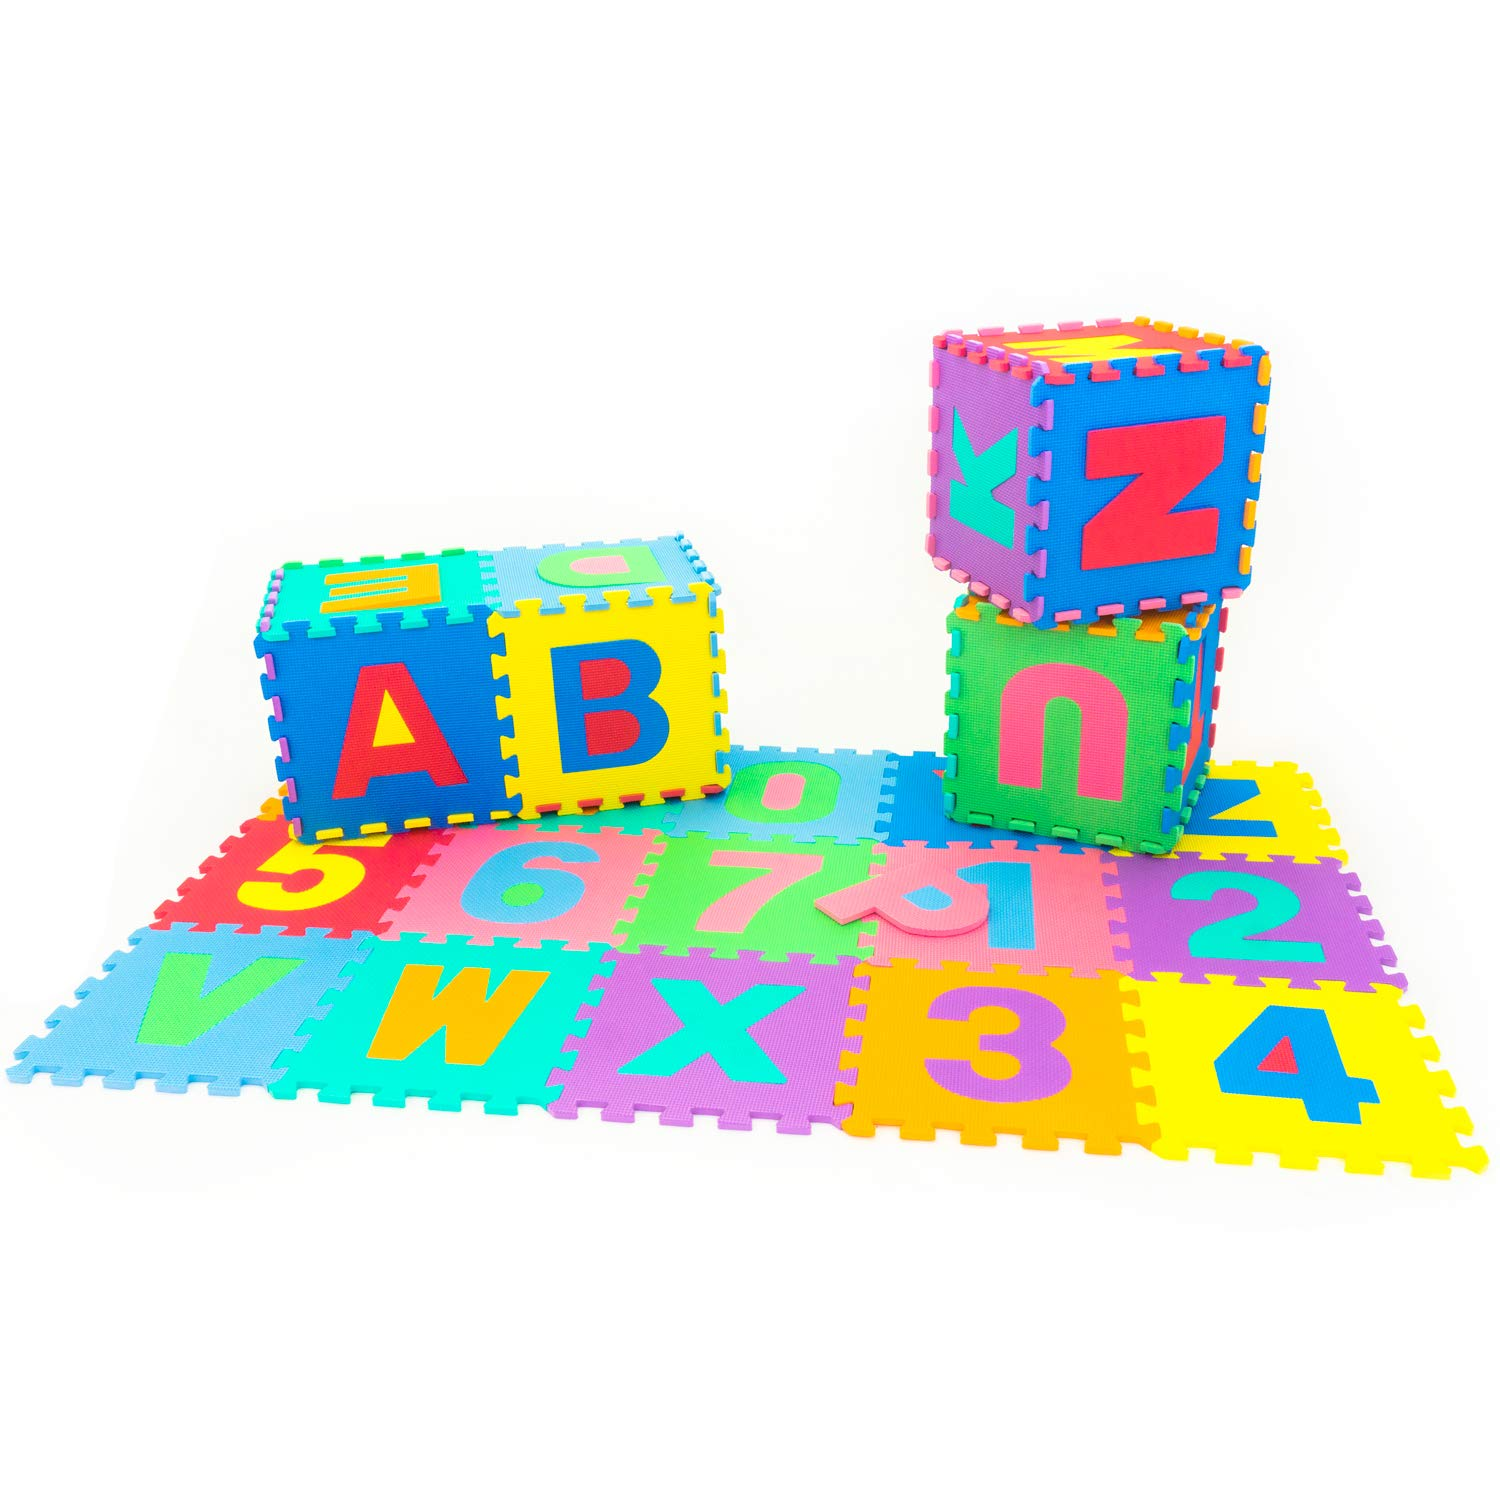 ProSource Kids Foam Puzzle Floor Play Mat with Shapes /& Colors or Numbers /& Alphabets 36 Tiles 12x12 and 24 Borders 36 Tiles and Edges Play Mat 12 by 12 ProSource Discounts Inc 810244020517